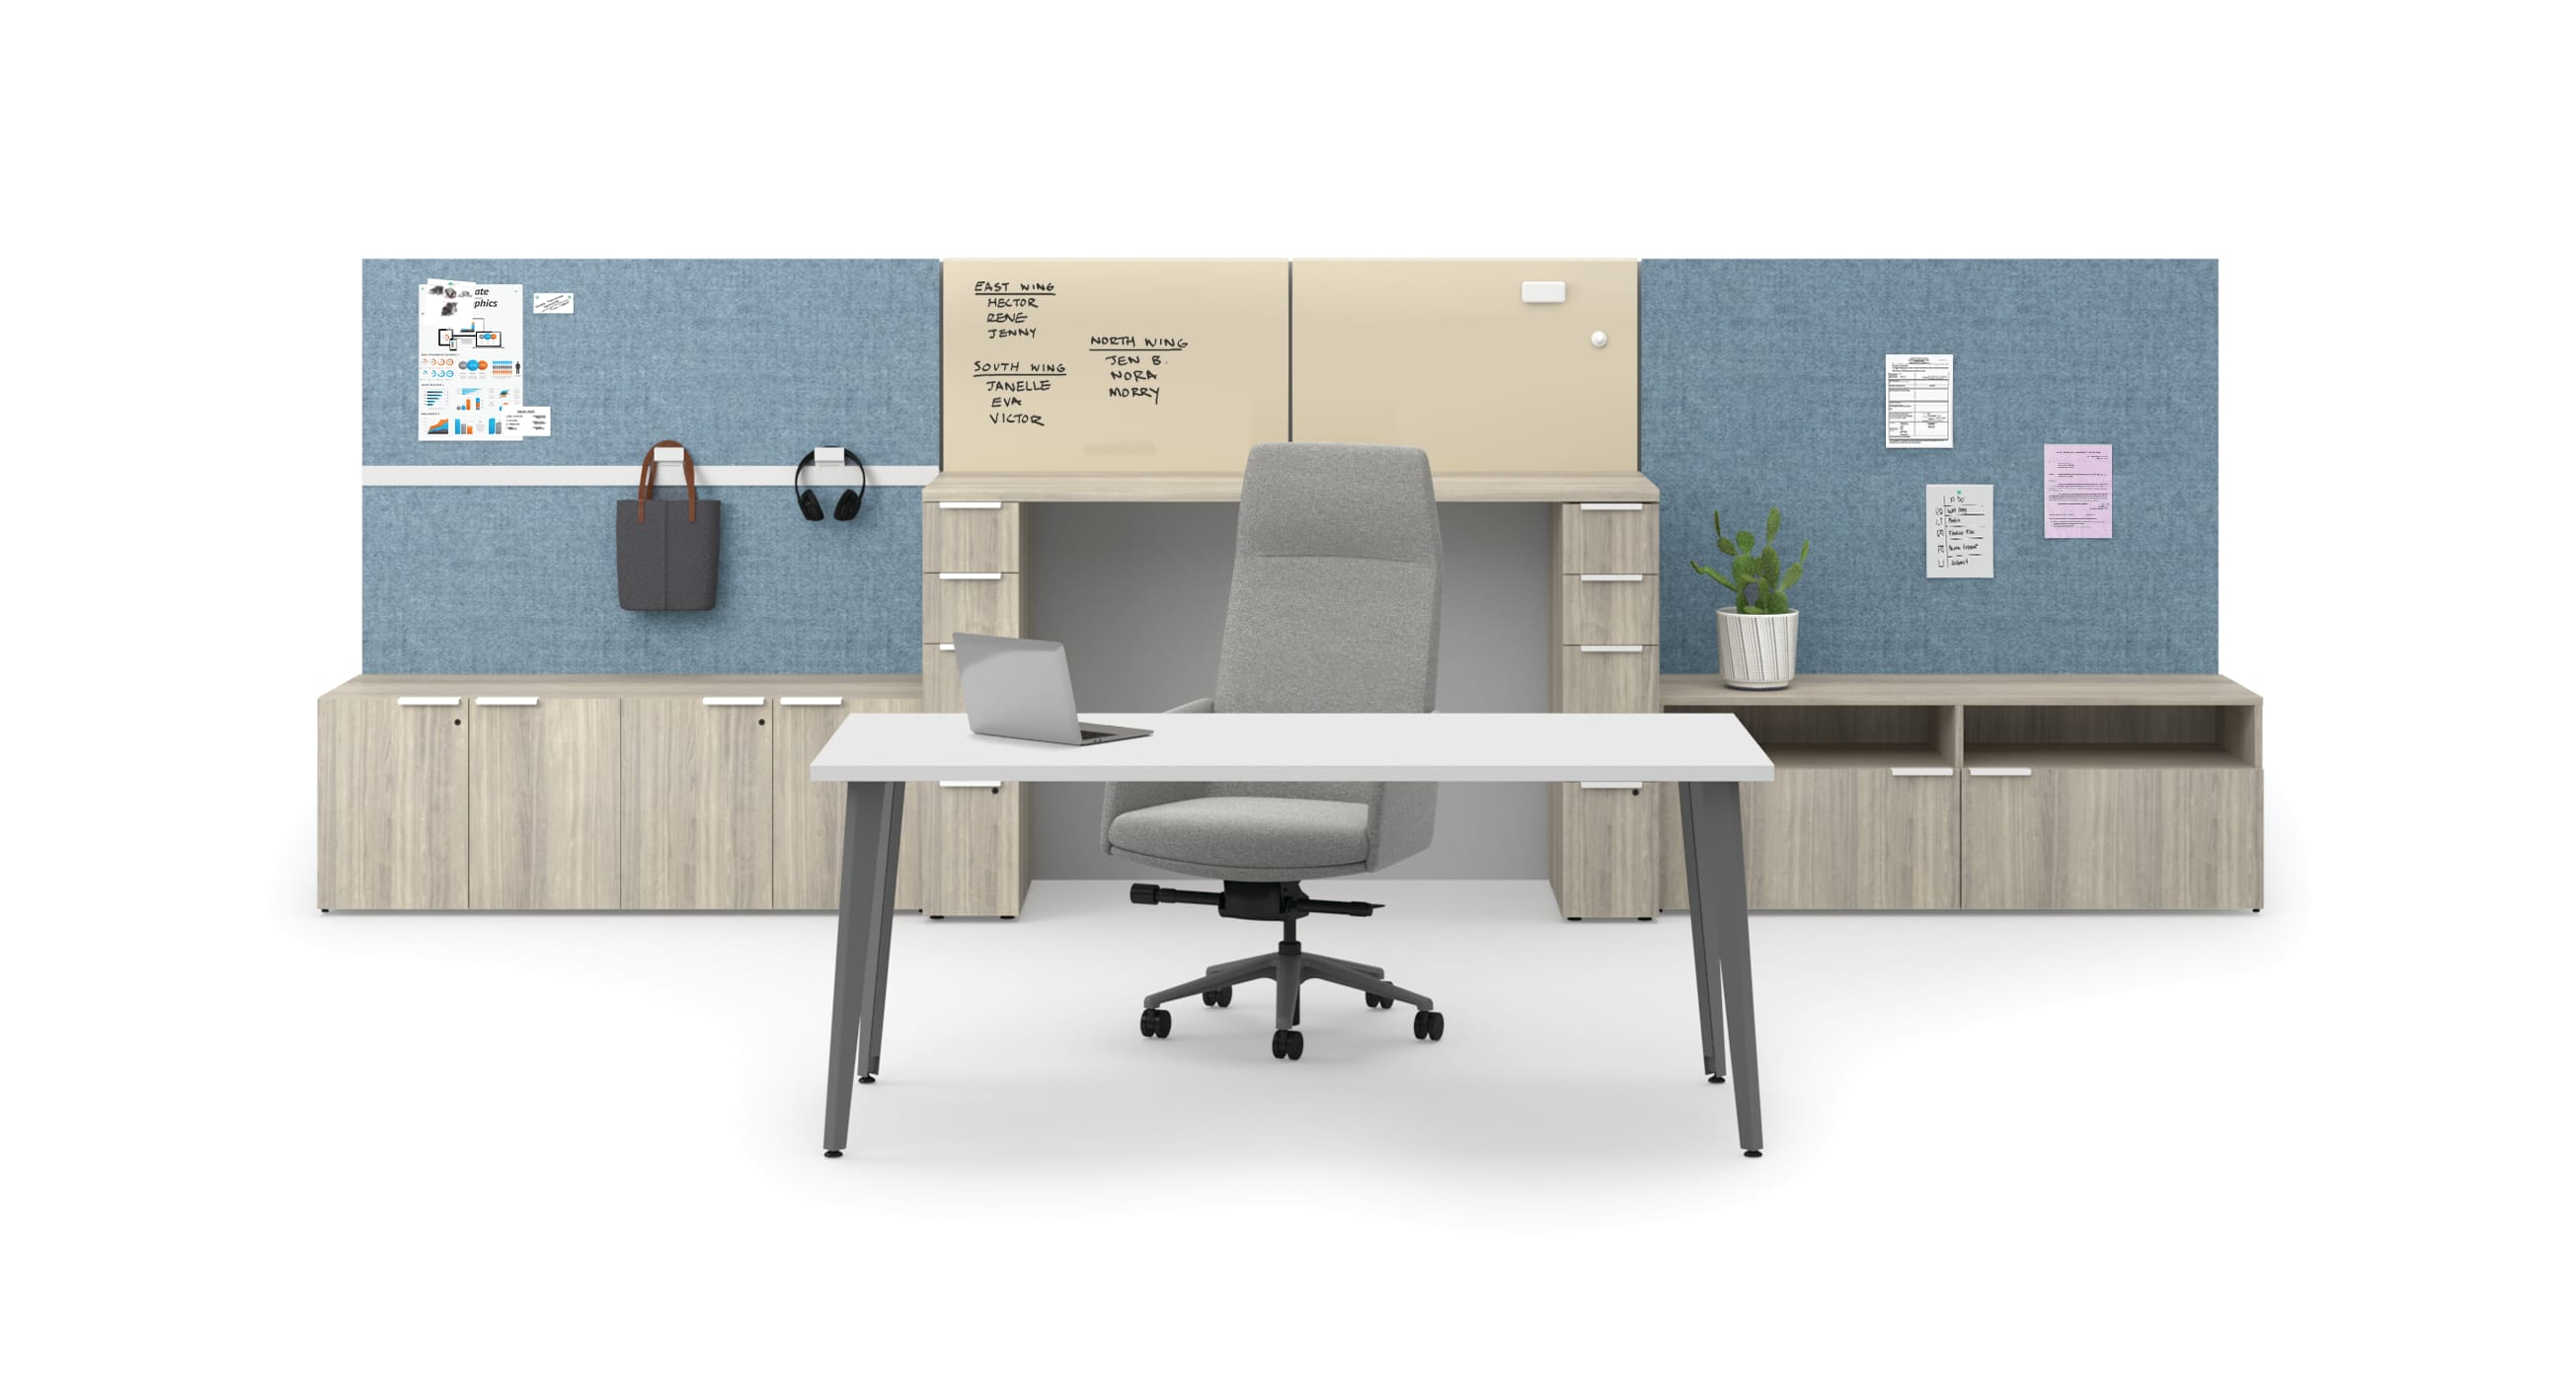 Voi private office with Workwall tiles and Mav Chair